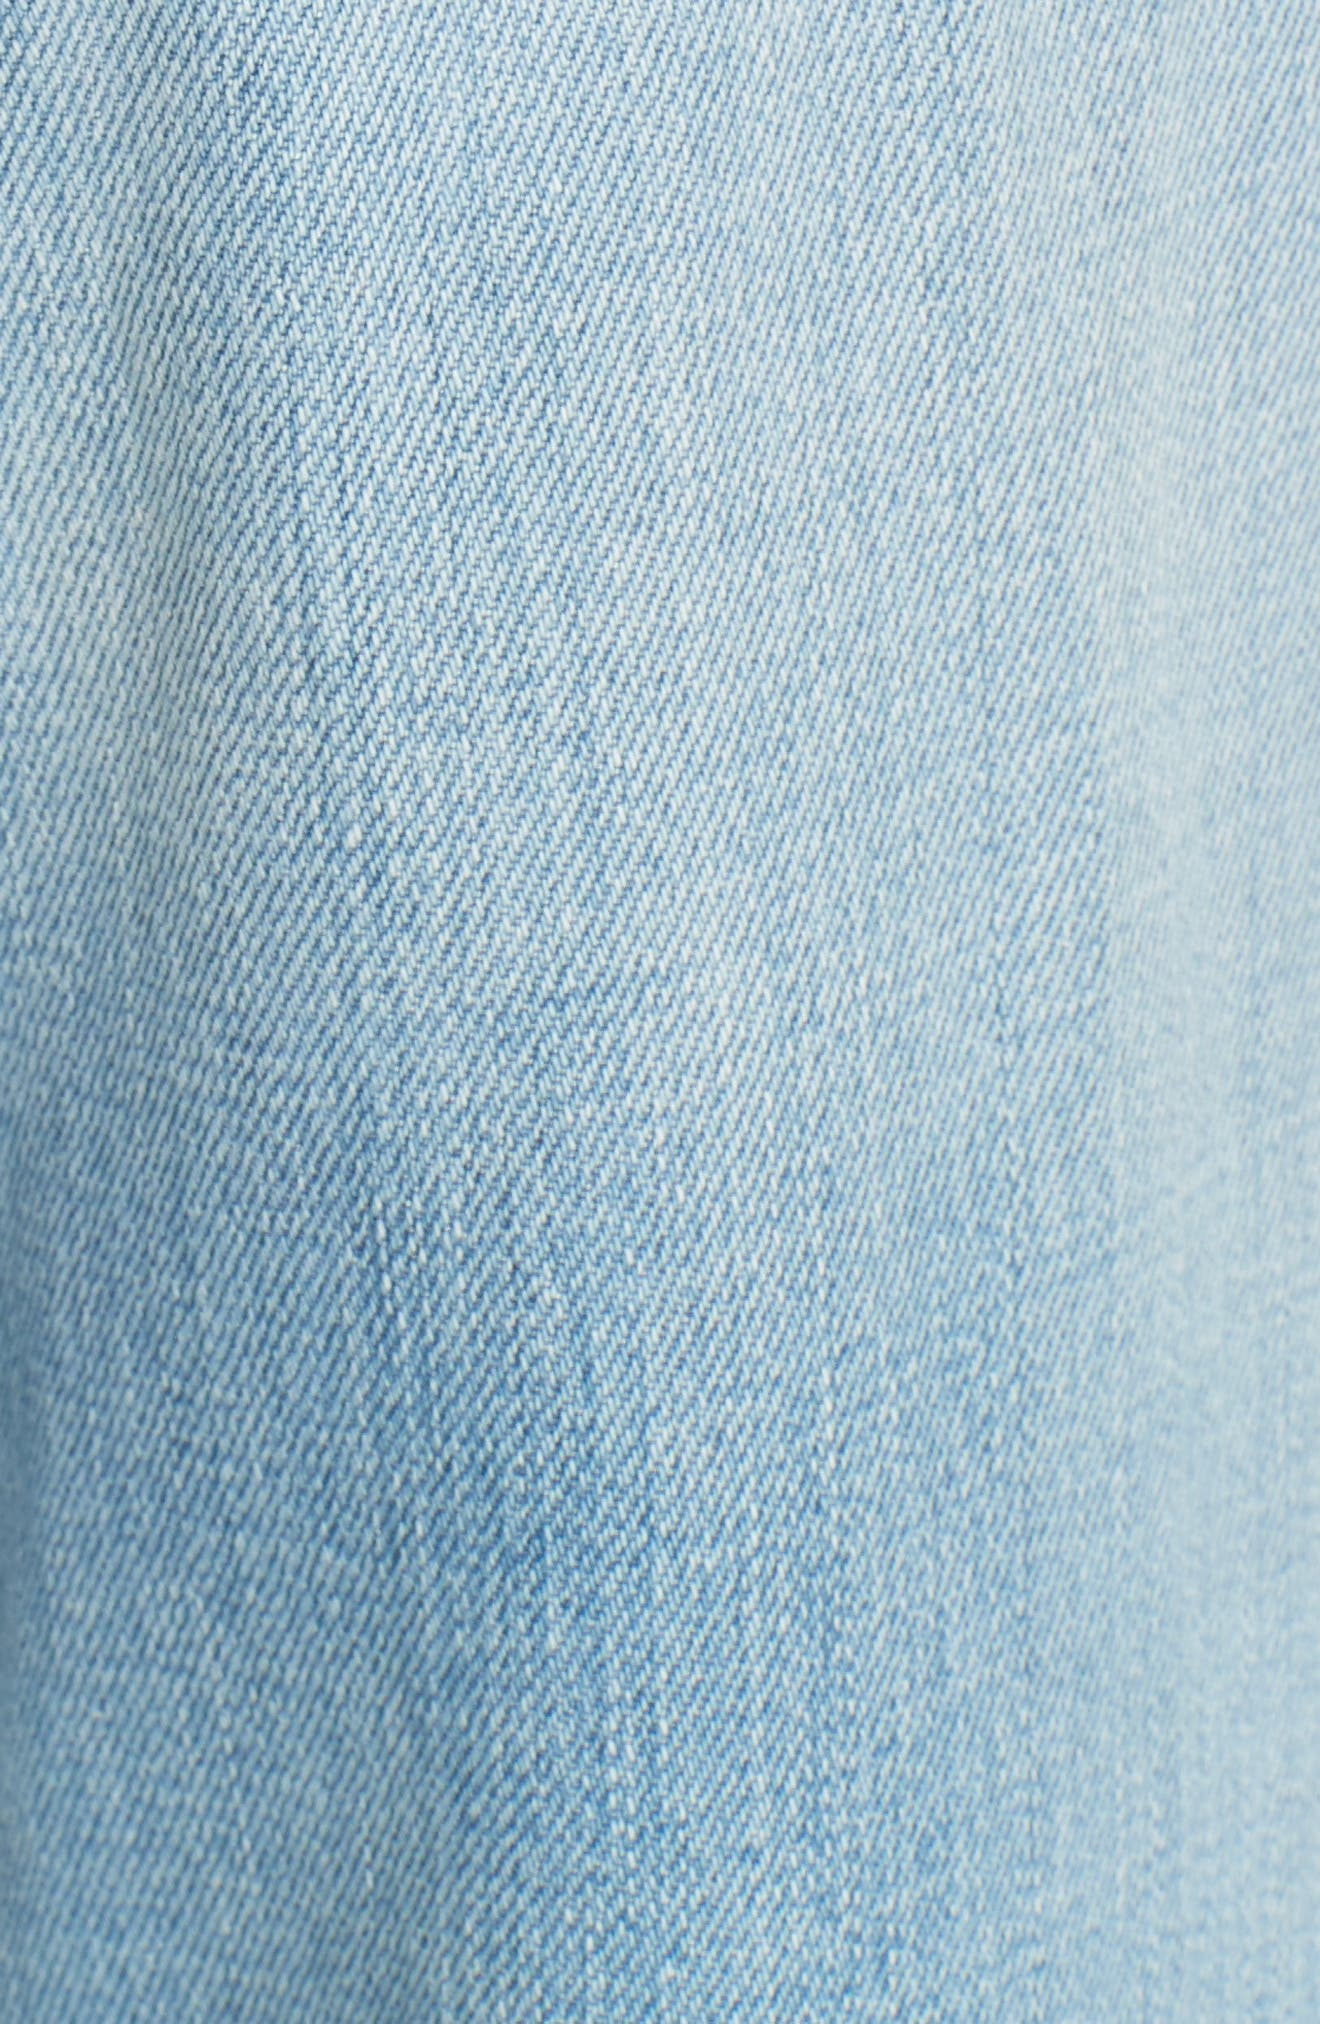 Carla Wide Leg Jeans,                             Alternate thumbnail 6, color,                             GONNA FLY NOW